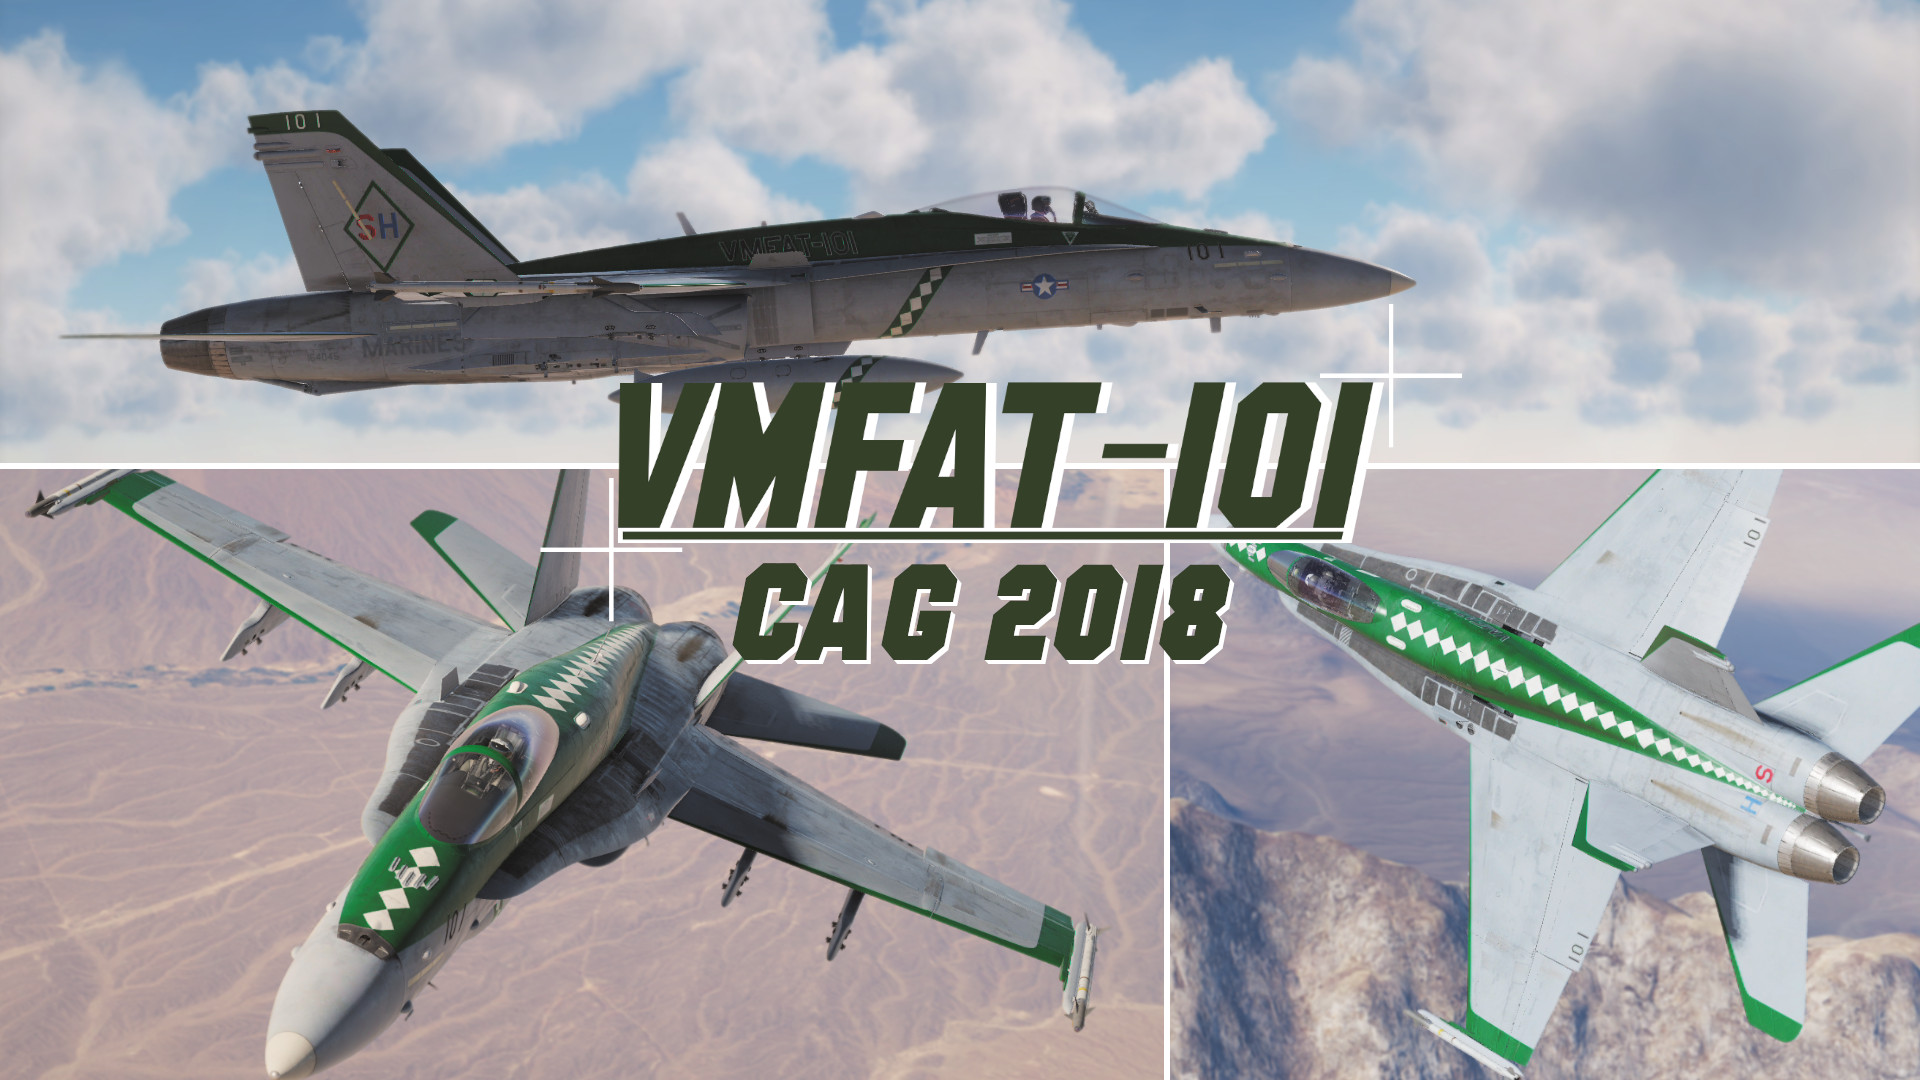 F/A-18C Hornet Lot 20, VMFAT-101 Sharpshooters, CAG 2018